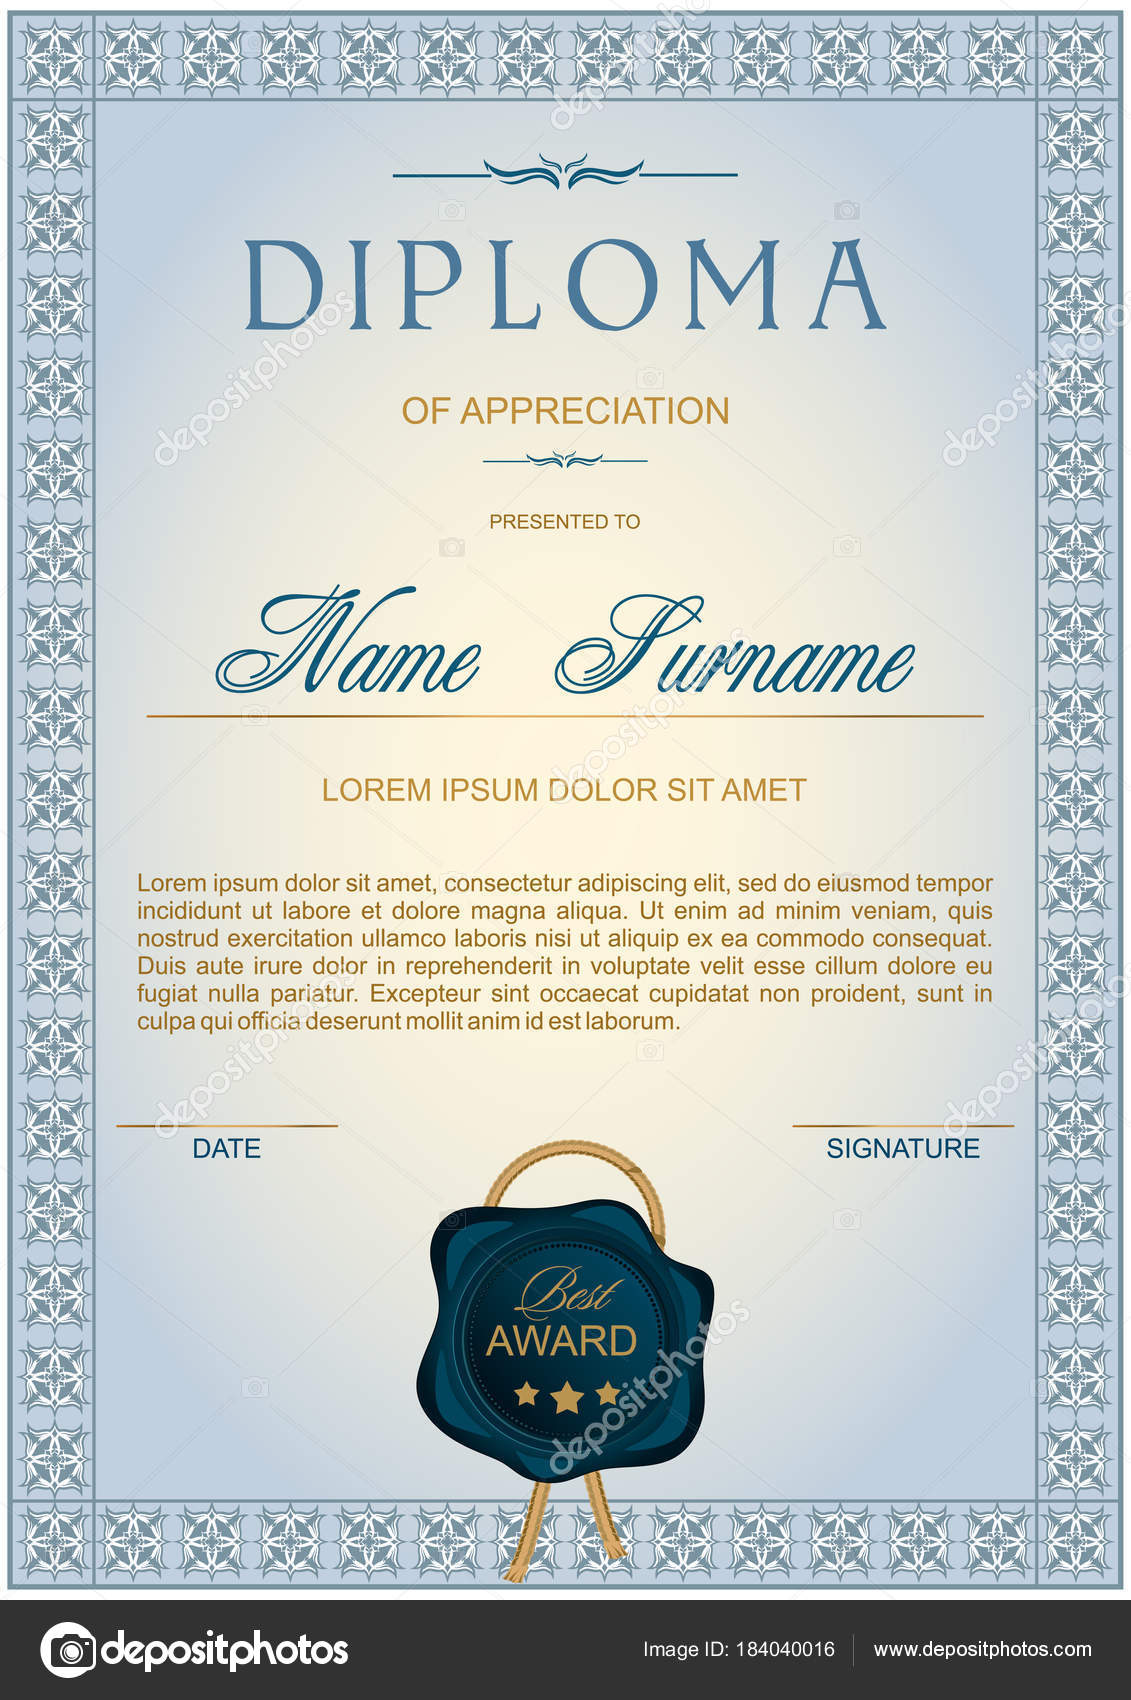 diploma vertical format gray blue shades classic elegant style frame